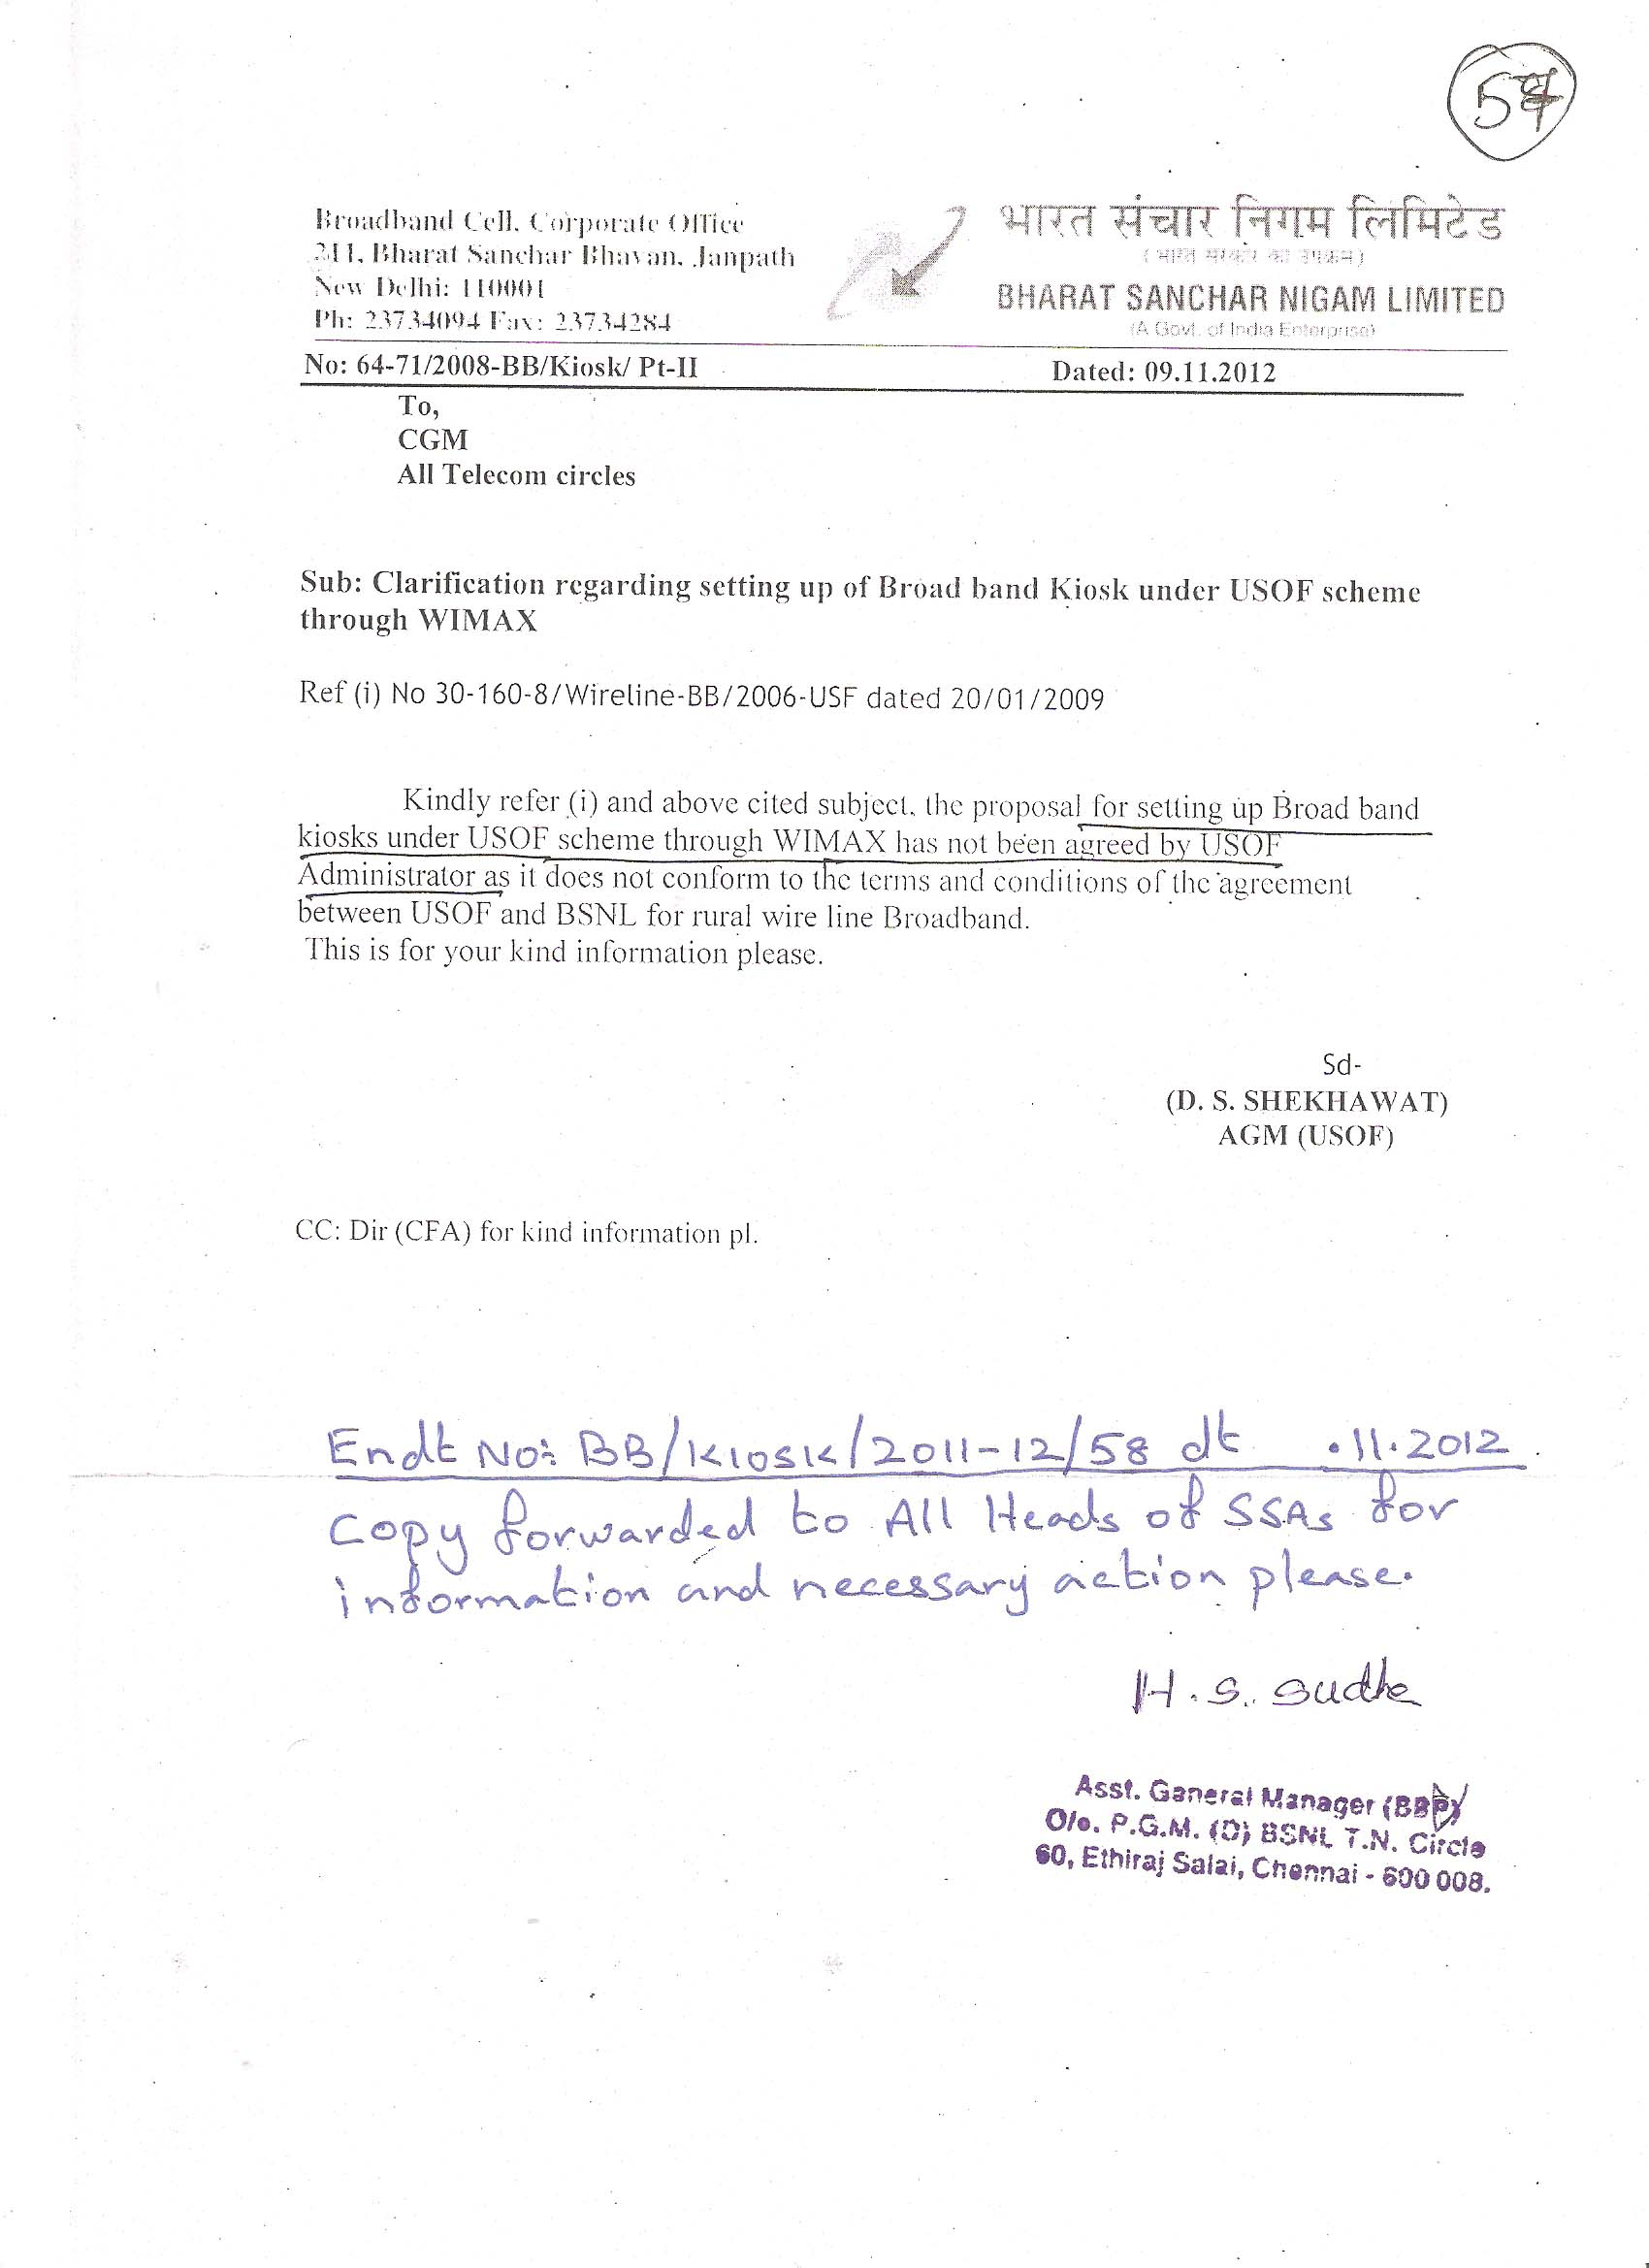 Application letter for bsnl broadband plan change migroup application letter for bsnl broadband plan change spiritdancerdesigns Gallery